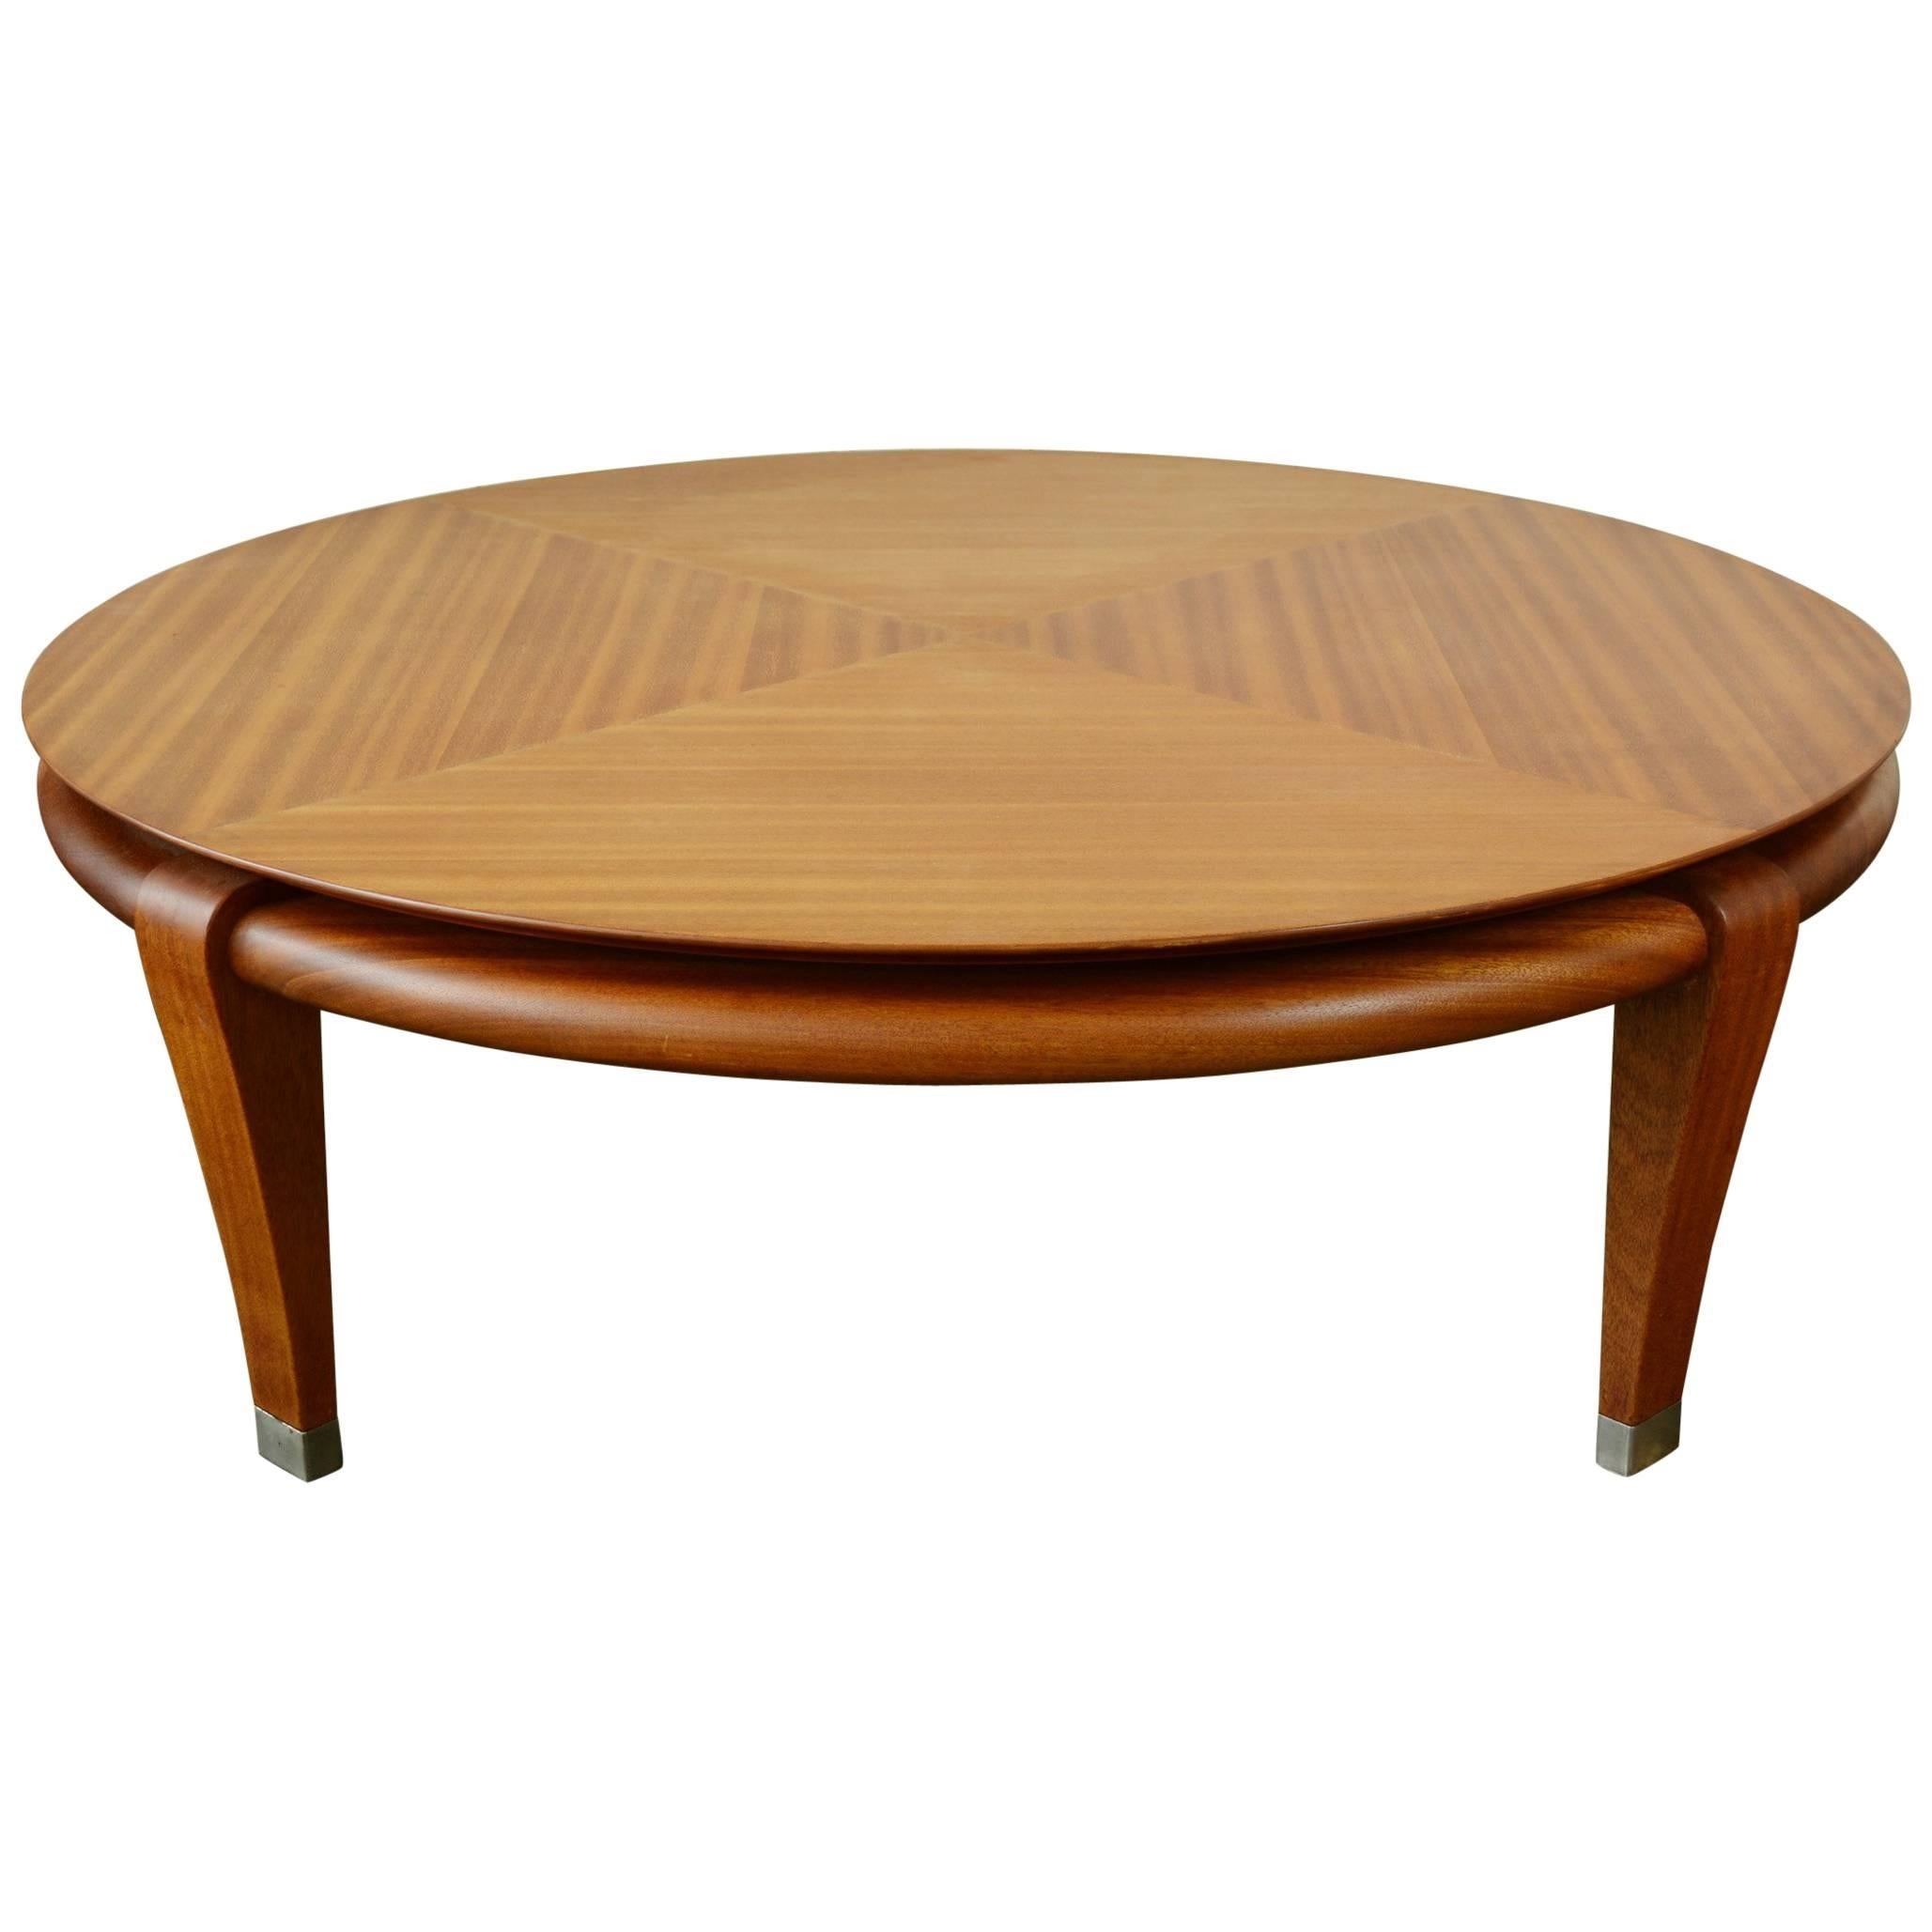 Brown Saltman Mahogany Coffee Table by Paul Laszlo